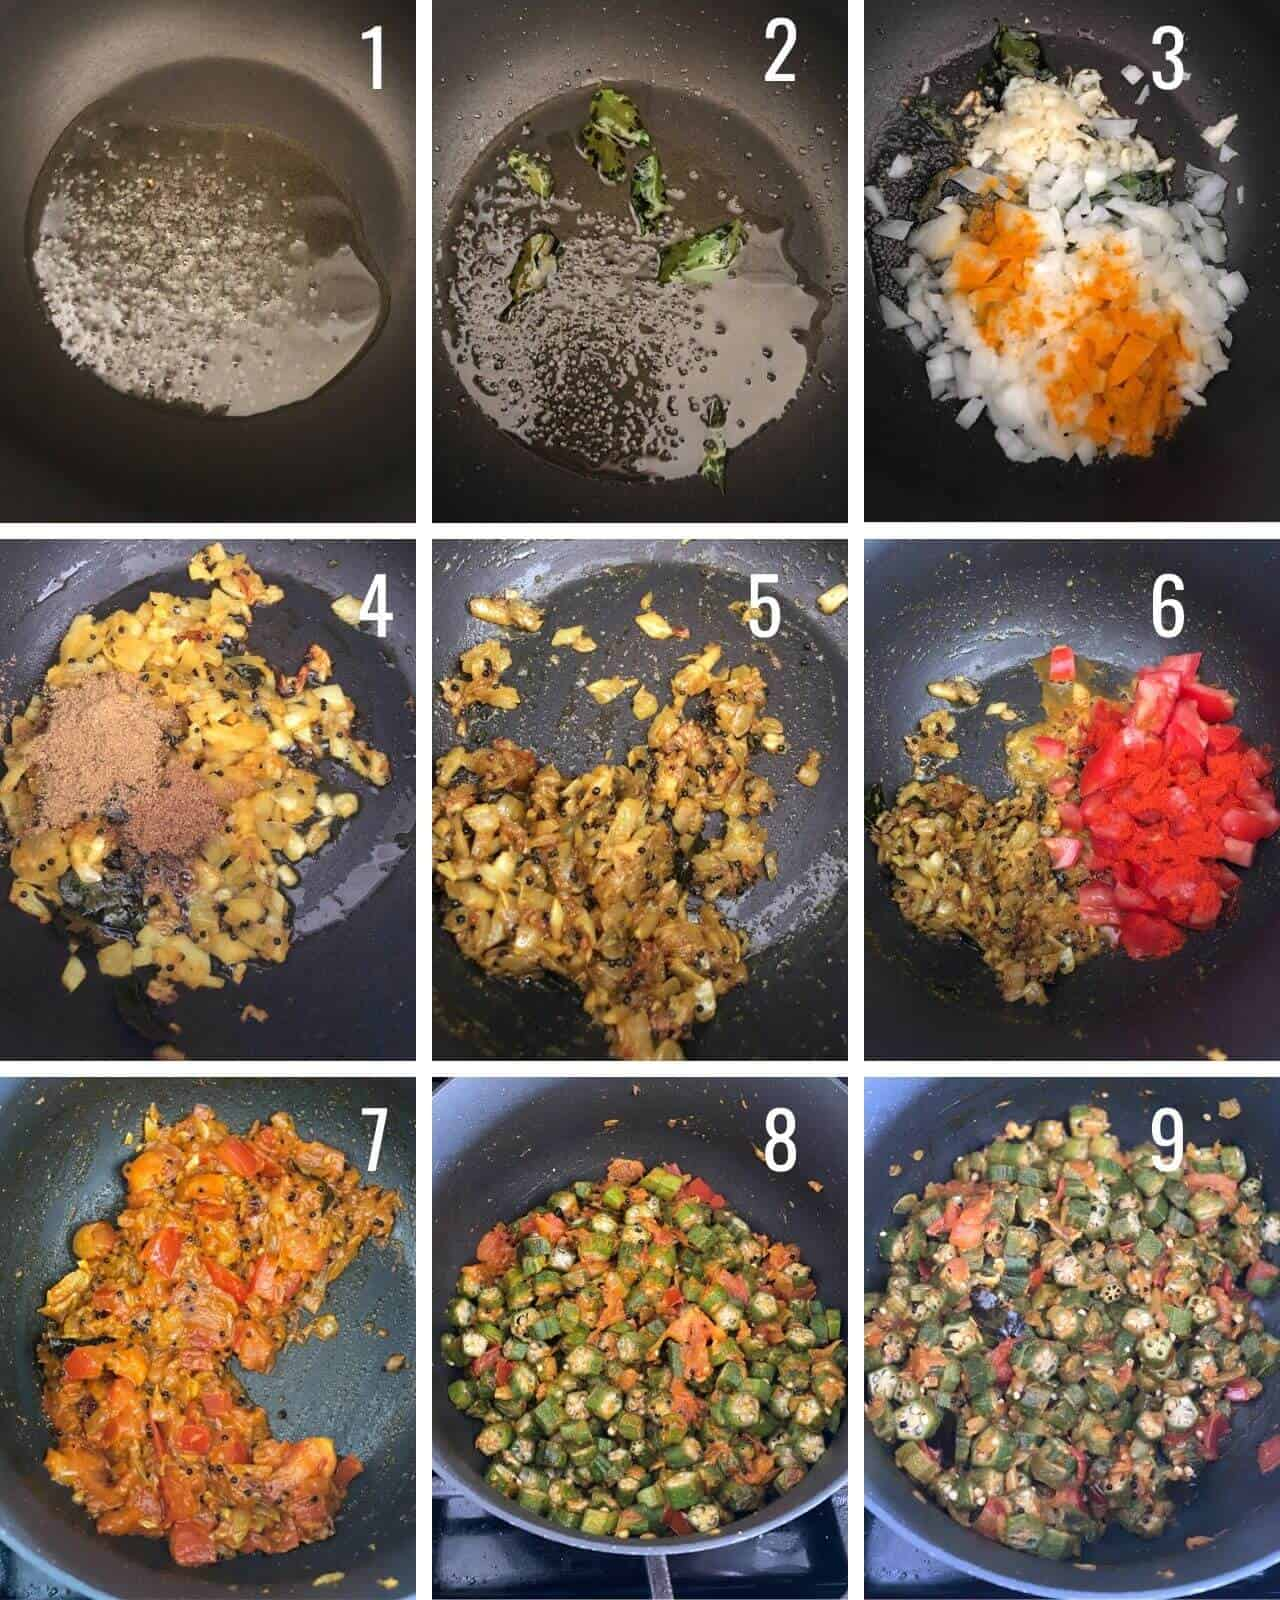 A collage of images showing how to make bhindi masala step by step